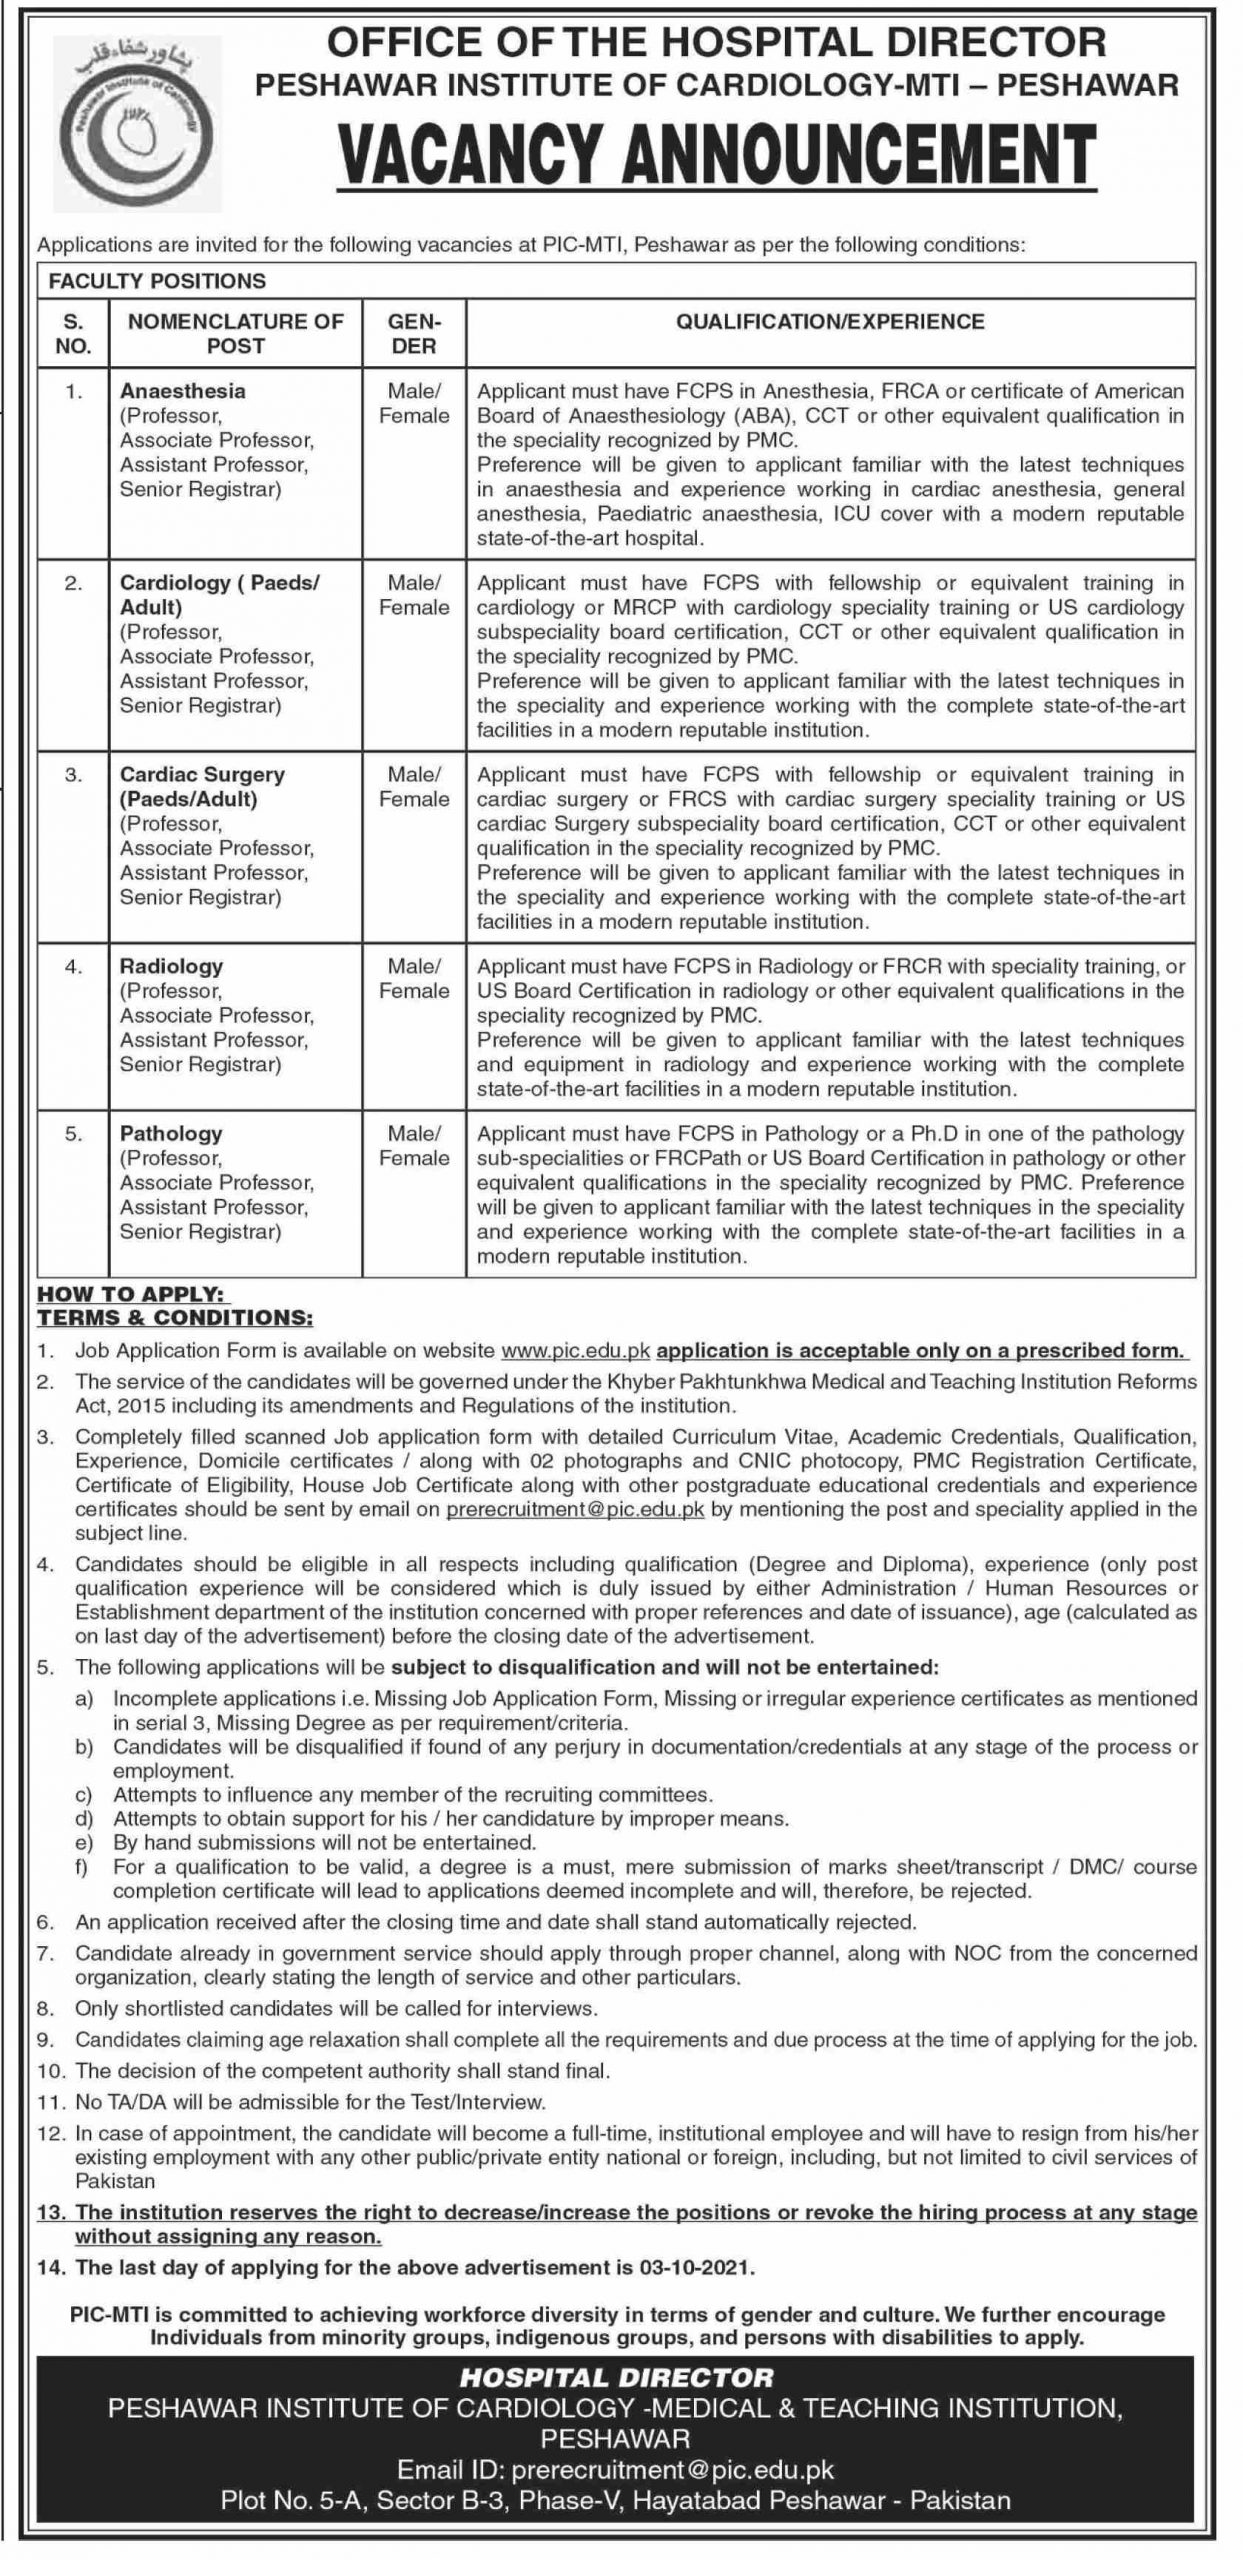 Latest PaperPk Jobs in Peshawar Institute of Cardiology